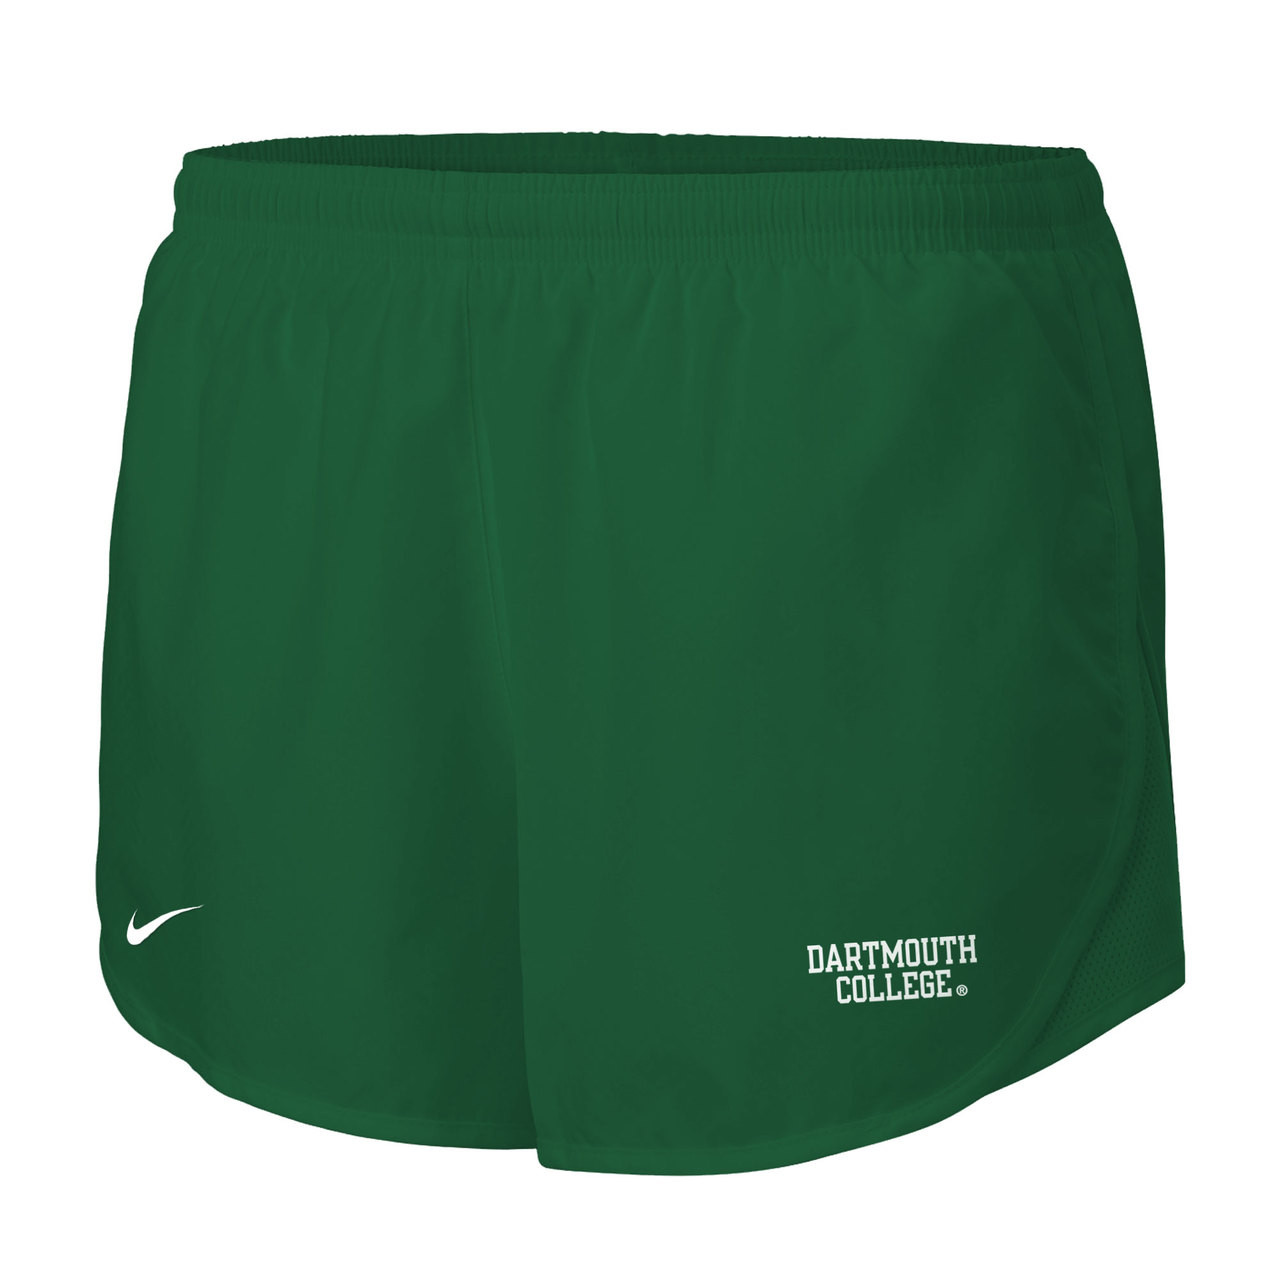 Women s Nike green athletic shorts with white Nike swoosh on the right and   Dartmouth College a09b1f75e